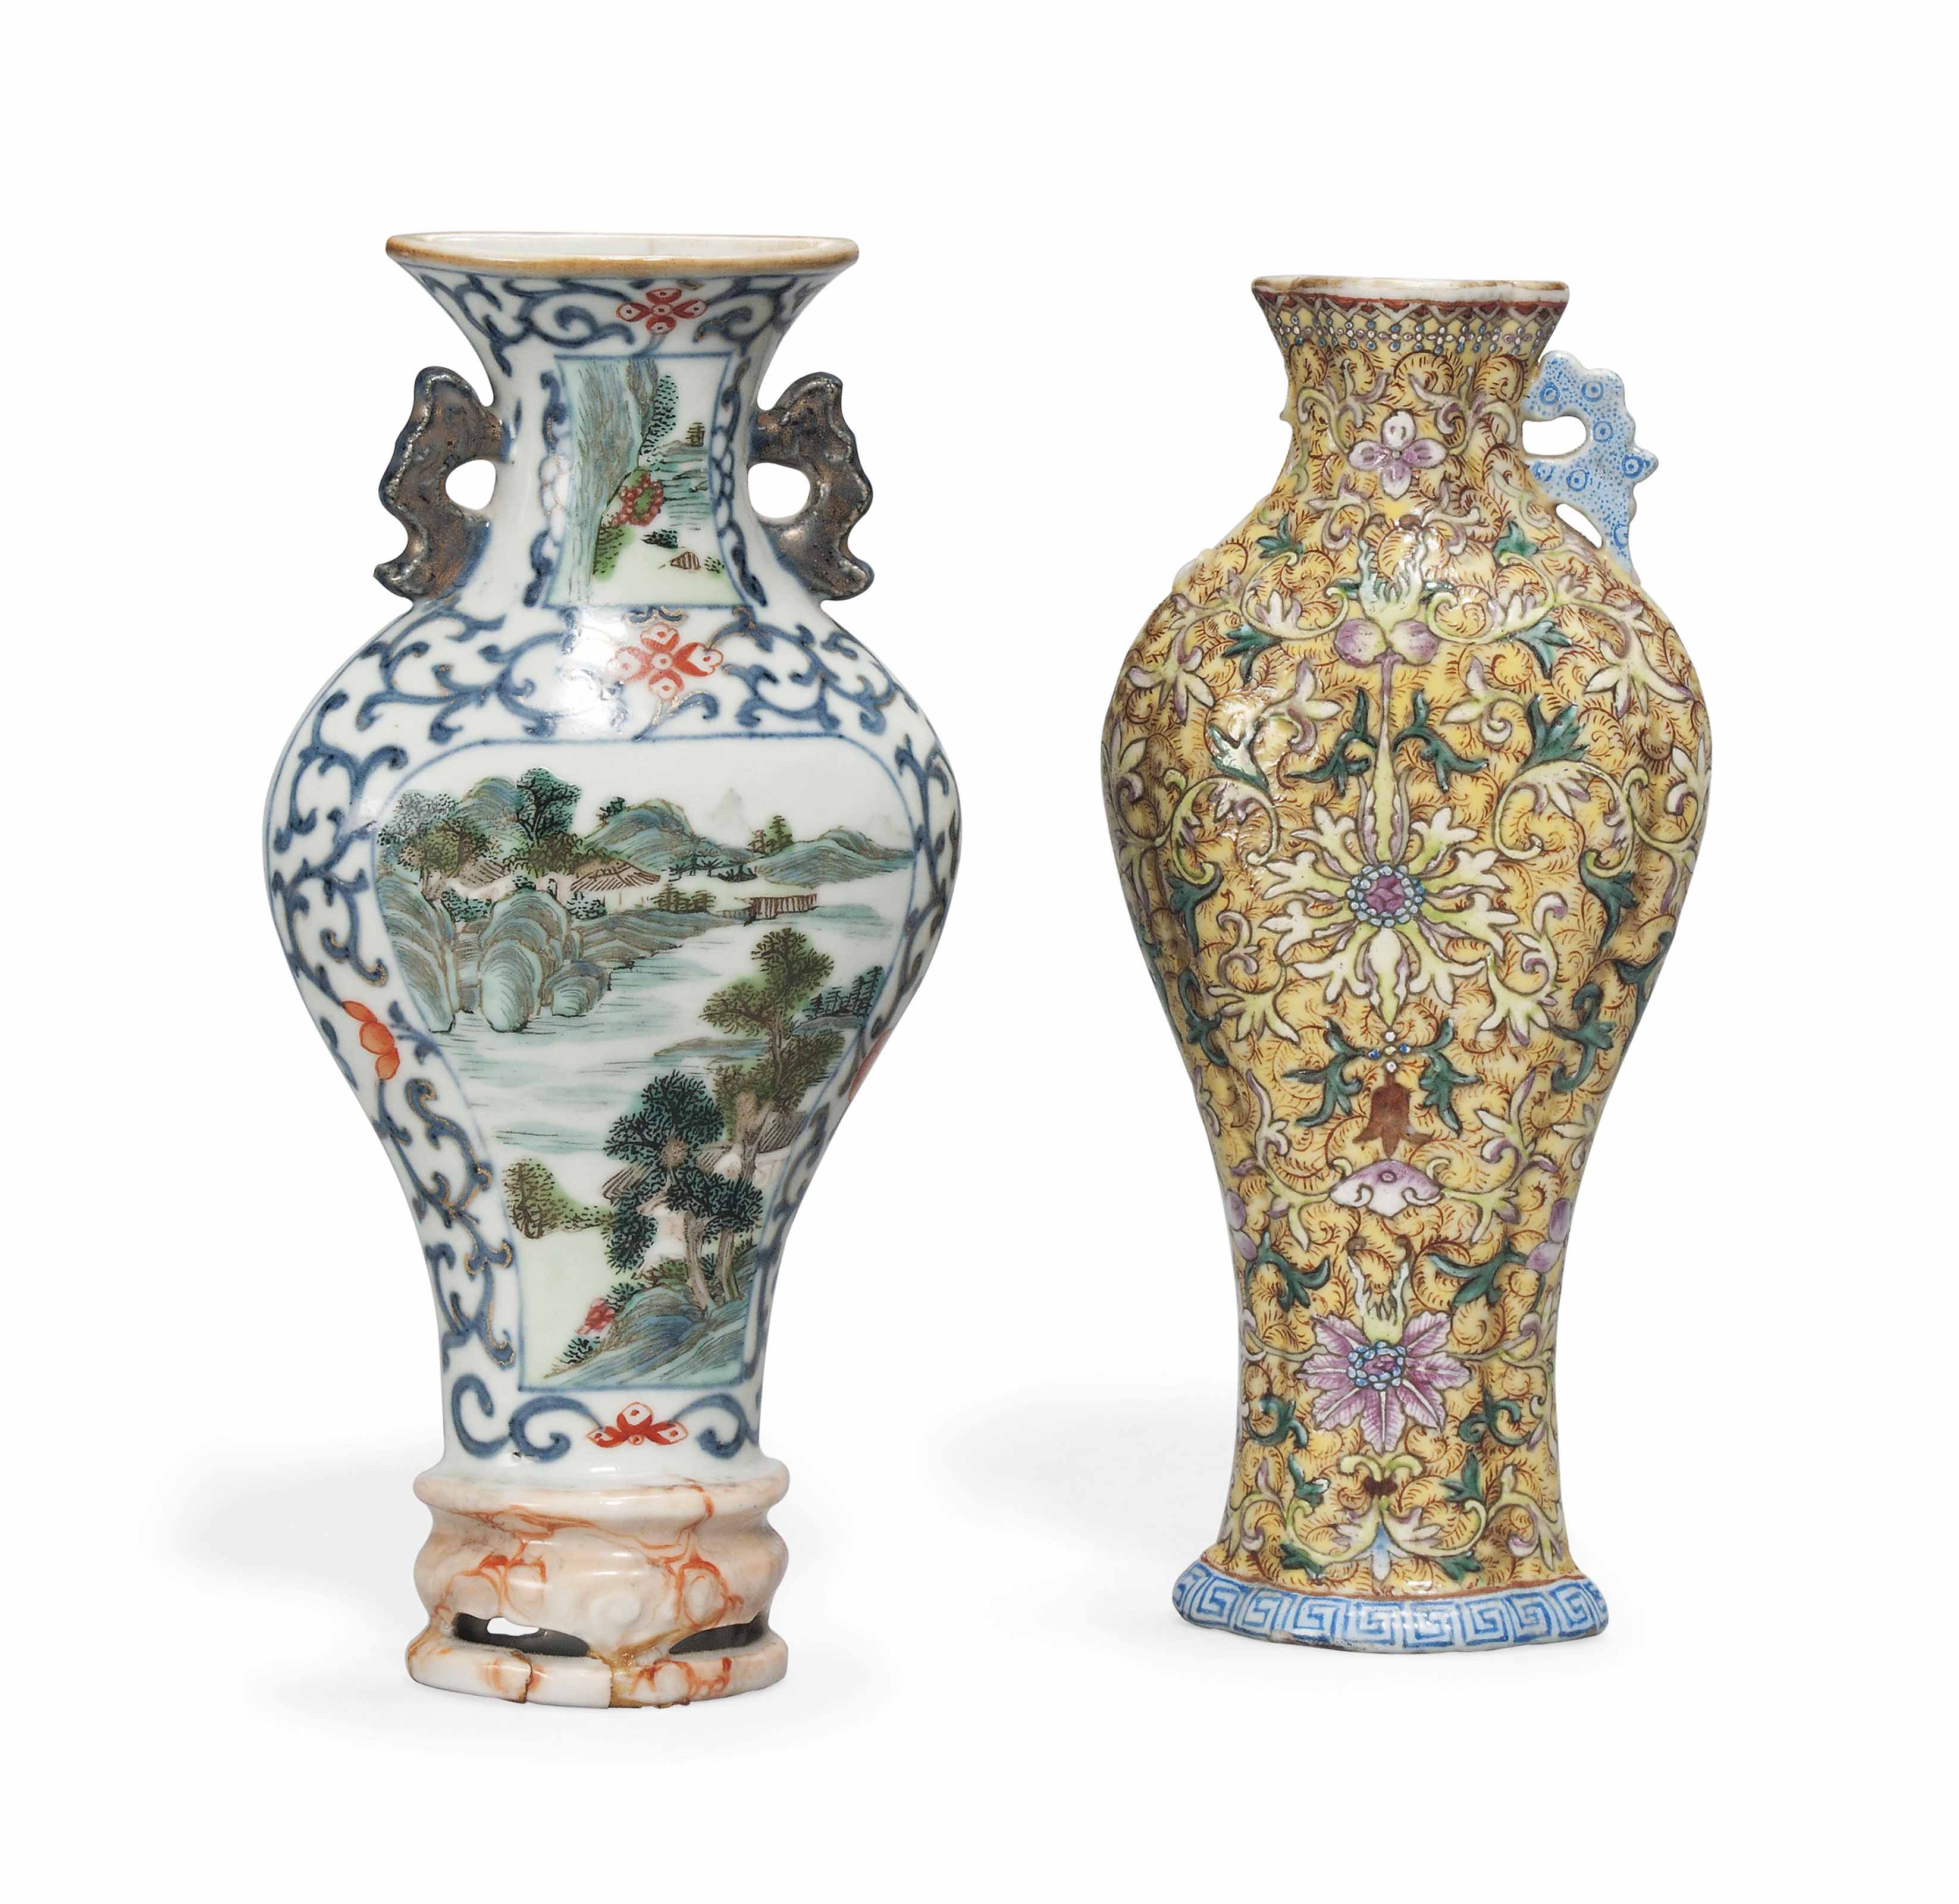 TWO CHINESE PORCELAIN BALUSTER WALL VASES